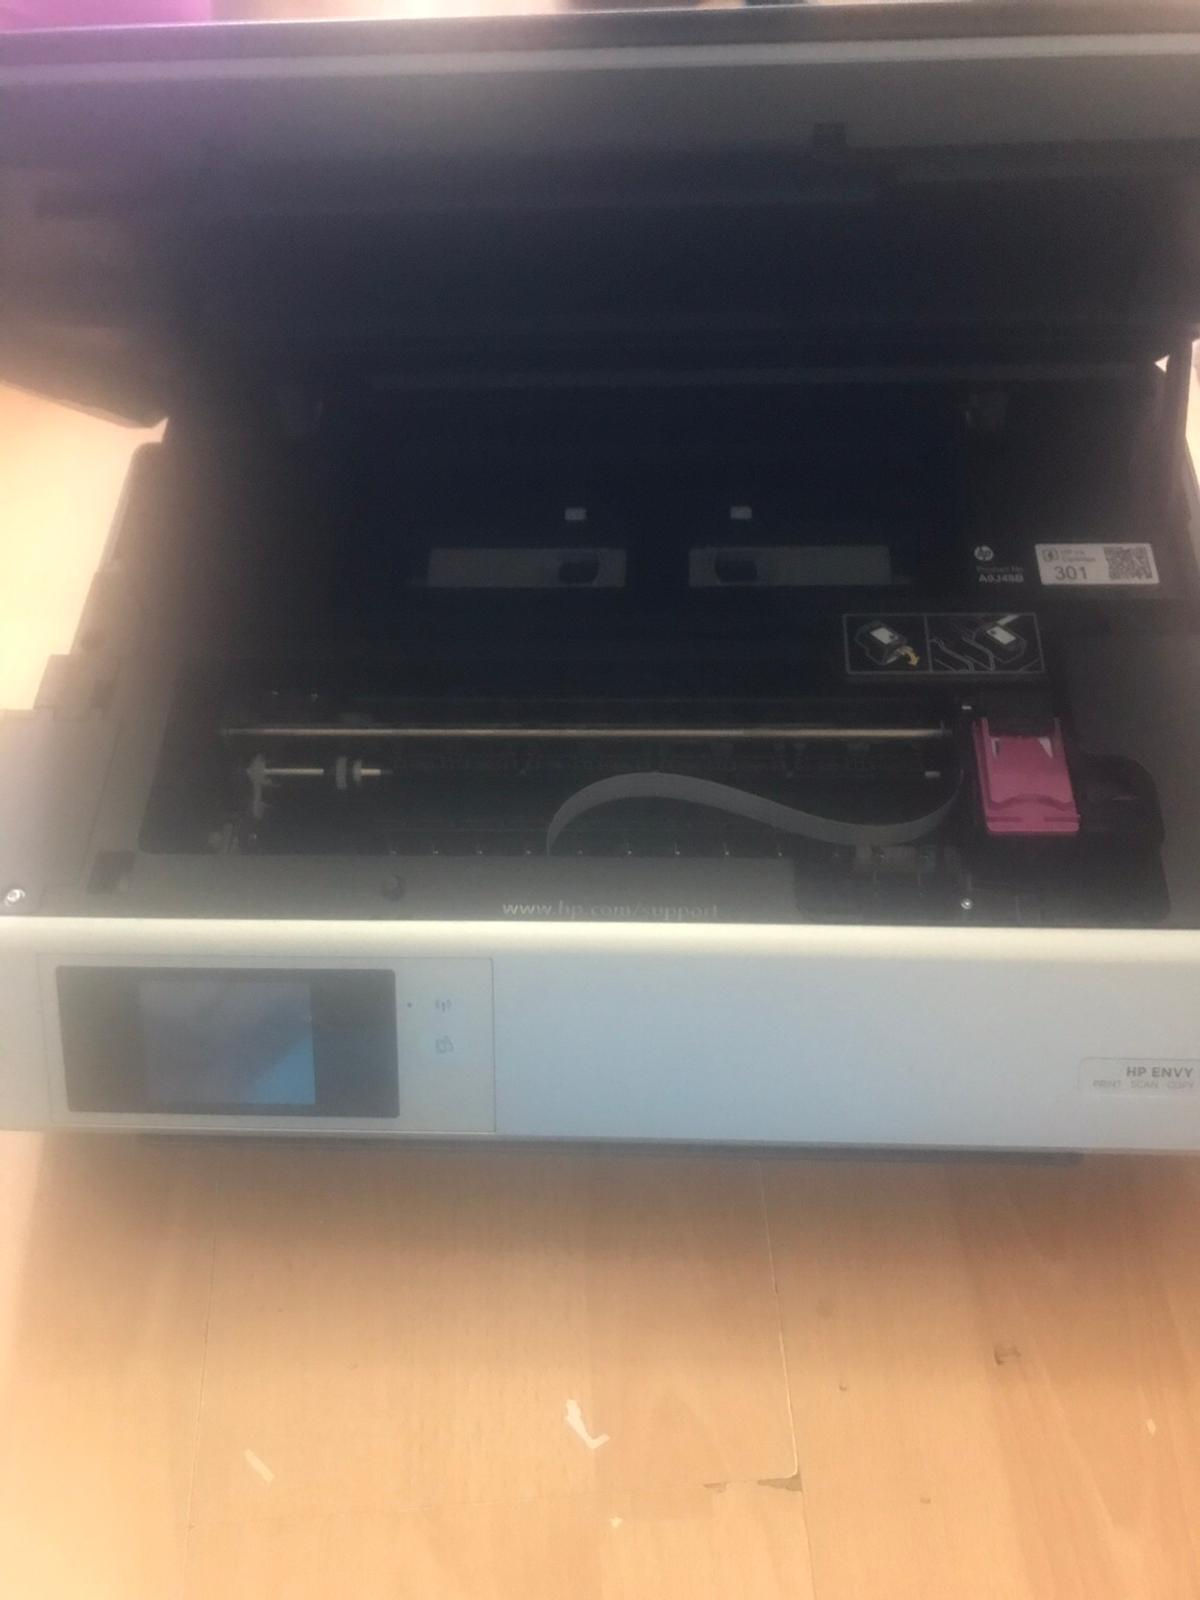 HP ENVY 5532 printer copier scanner. Power cable and usb cable attached. No ink Buyer collects